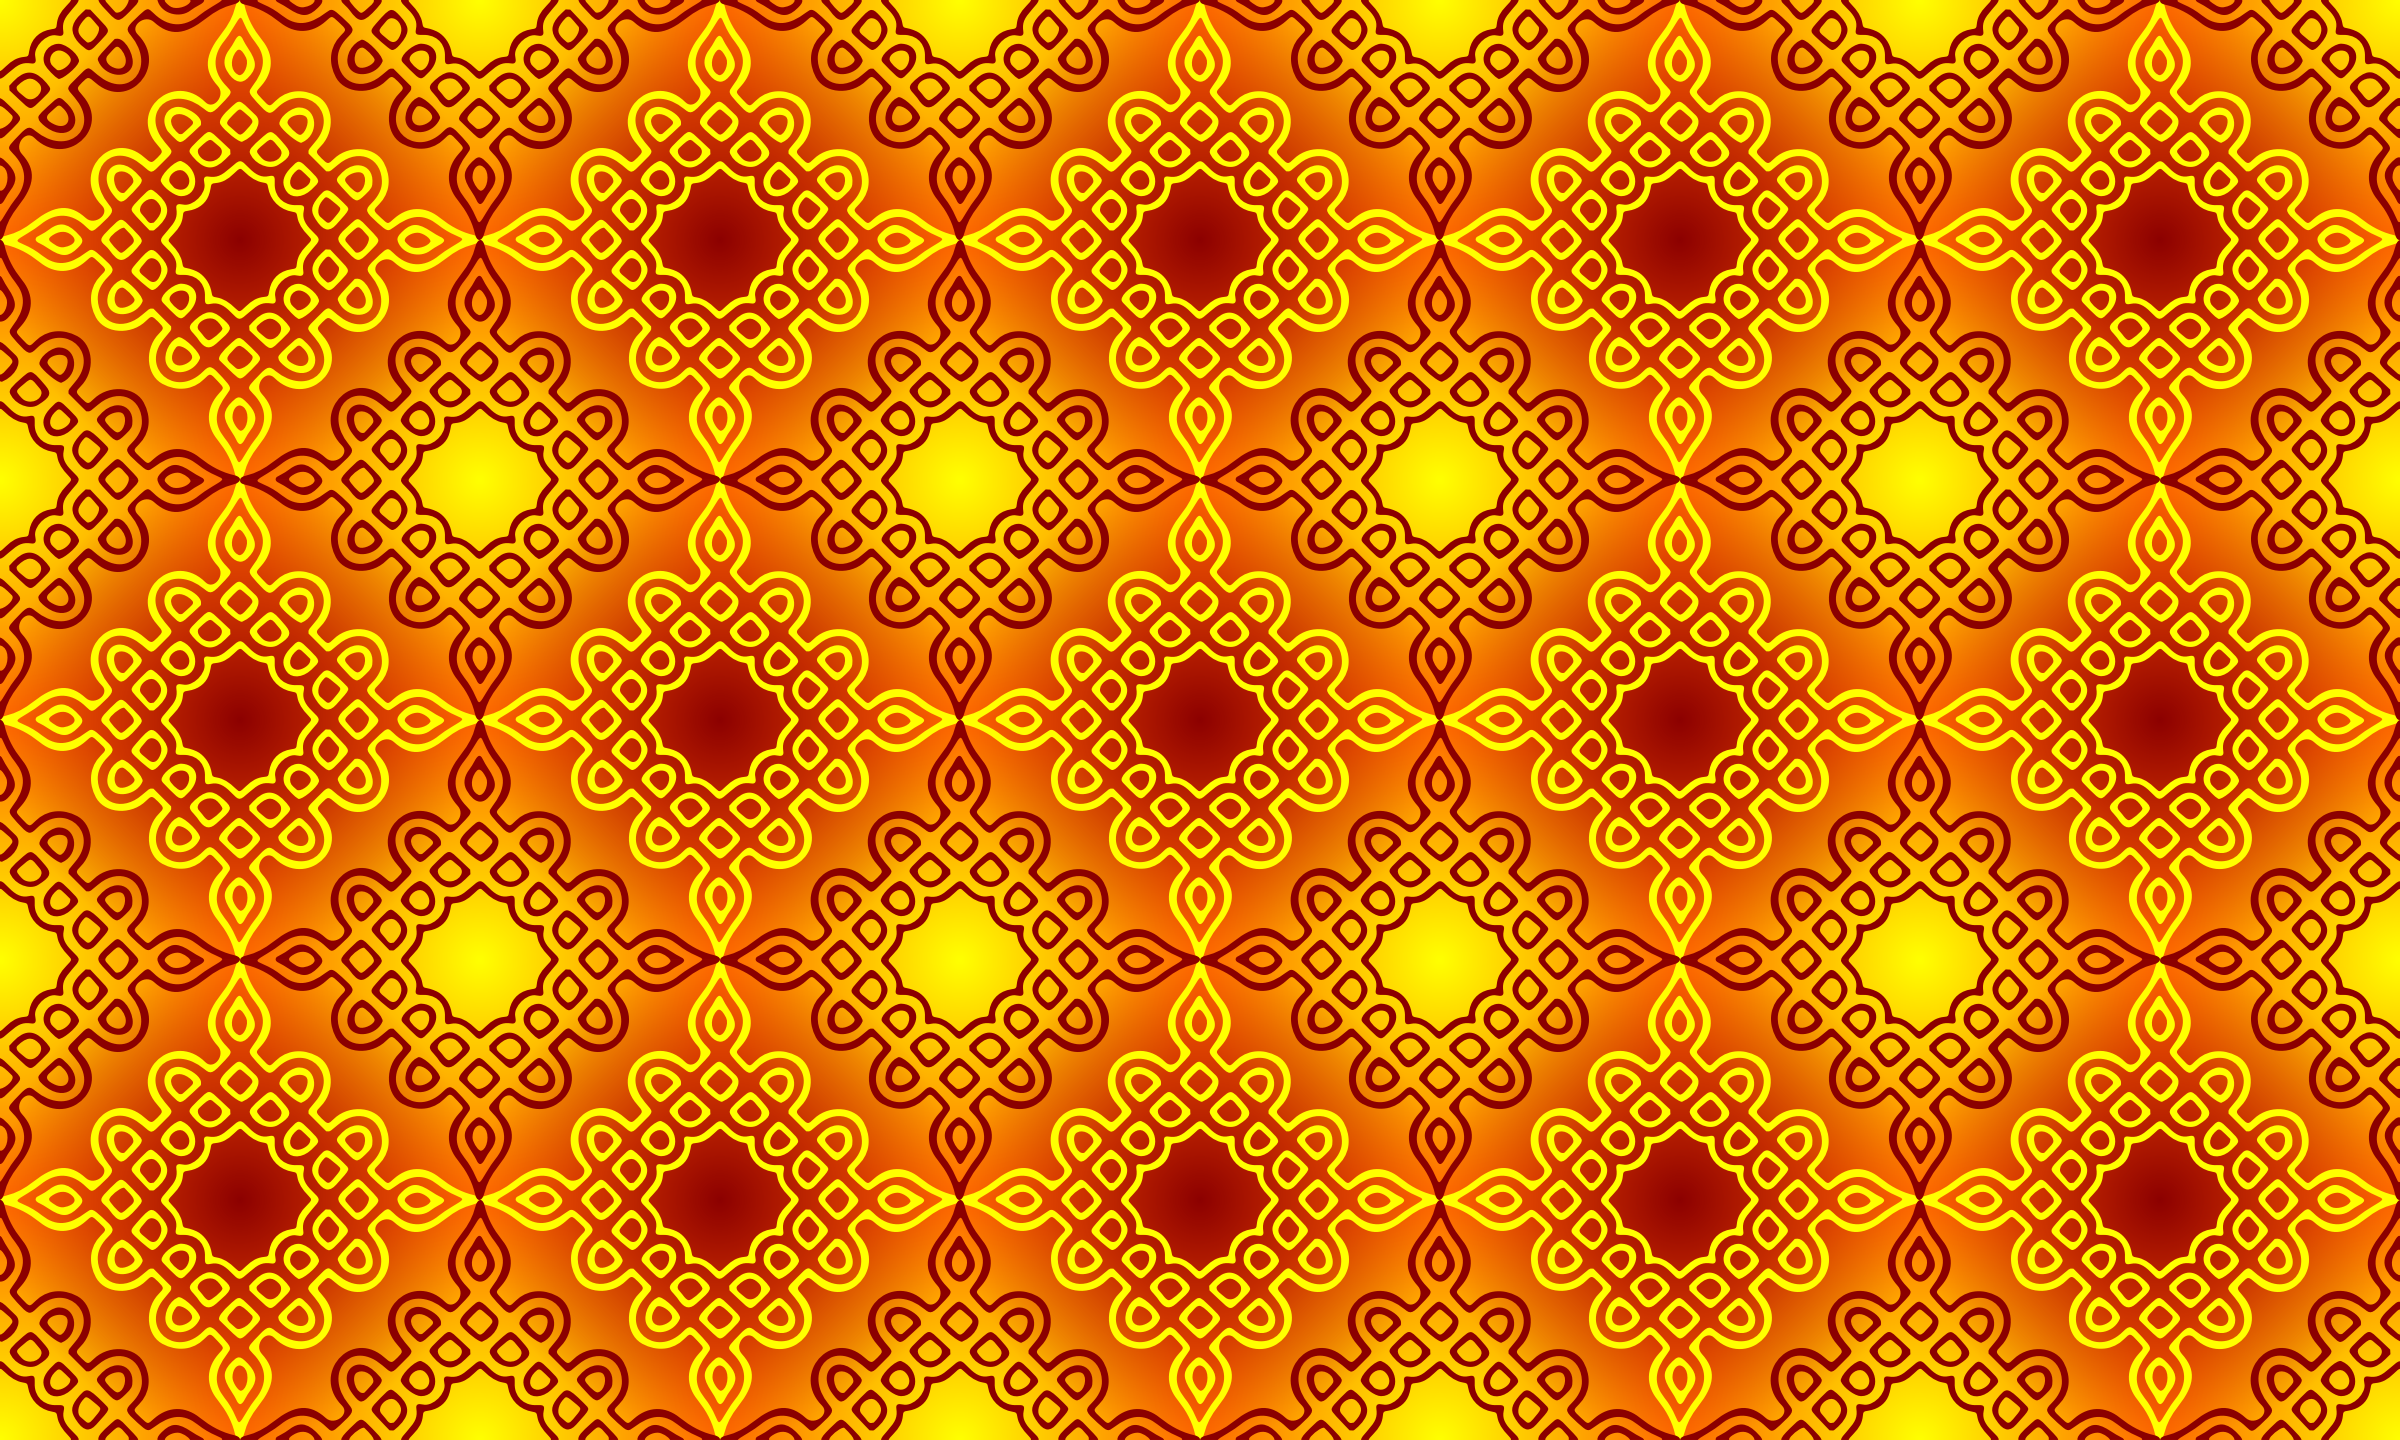 Background pattern 277 (colour) by Firkin